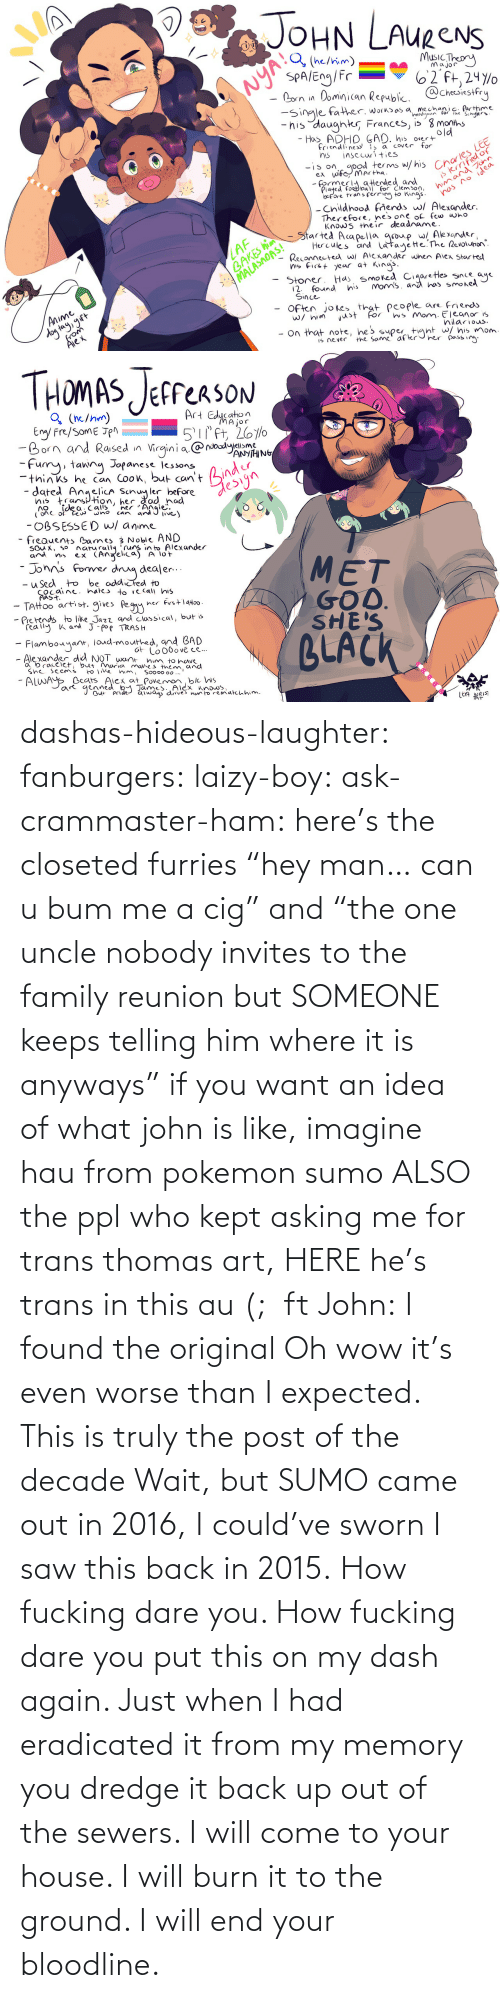 "to-the-ground: dashas-hideous-laughter:  fanburgers:   laizy-boy:   ask-crammaster-ham:   here's the closeted furries ""hey man… can u bum me a cig"" and ""the one uncle nobody invites to the family reunion but SOMEONE keeps telling him where it is anyways""   if you want an idea of what john is like, imagine hau from pokemon sumo ALSO the ppl who kept asking me for trans thomas art, HERE he's trans in this au (;  ft John:    I found the original     Oh wow it's even worse than I expected. This is truly the post of the decade    Wait, but SUMO came out in 2016, I could've sworn I saw this back in 2015.    How fucking dare you. How fucking dare you put this on my dash again. Just when I had eradicated it from my memory you dredge it back up out of the sewers. I will come to your house. I will burn it to the ground. I will end your bloodline."